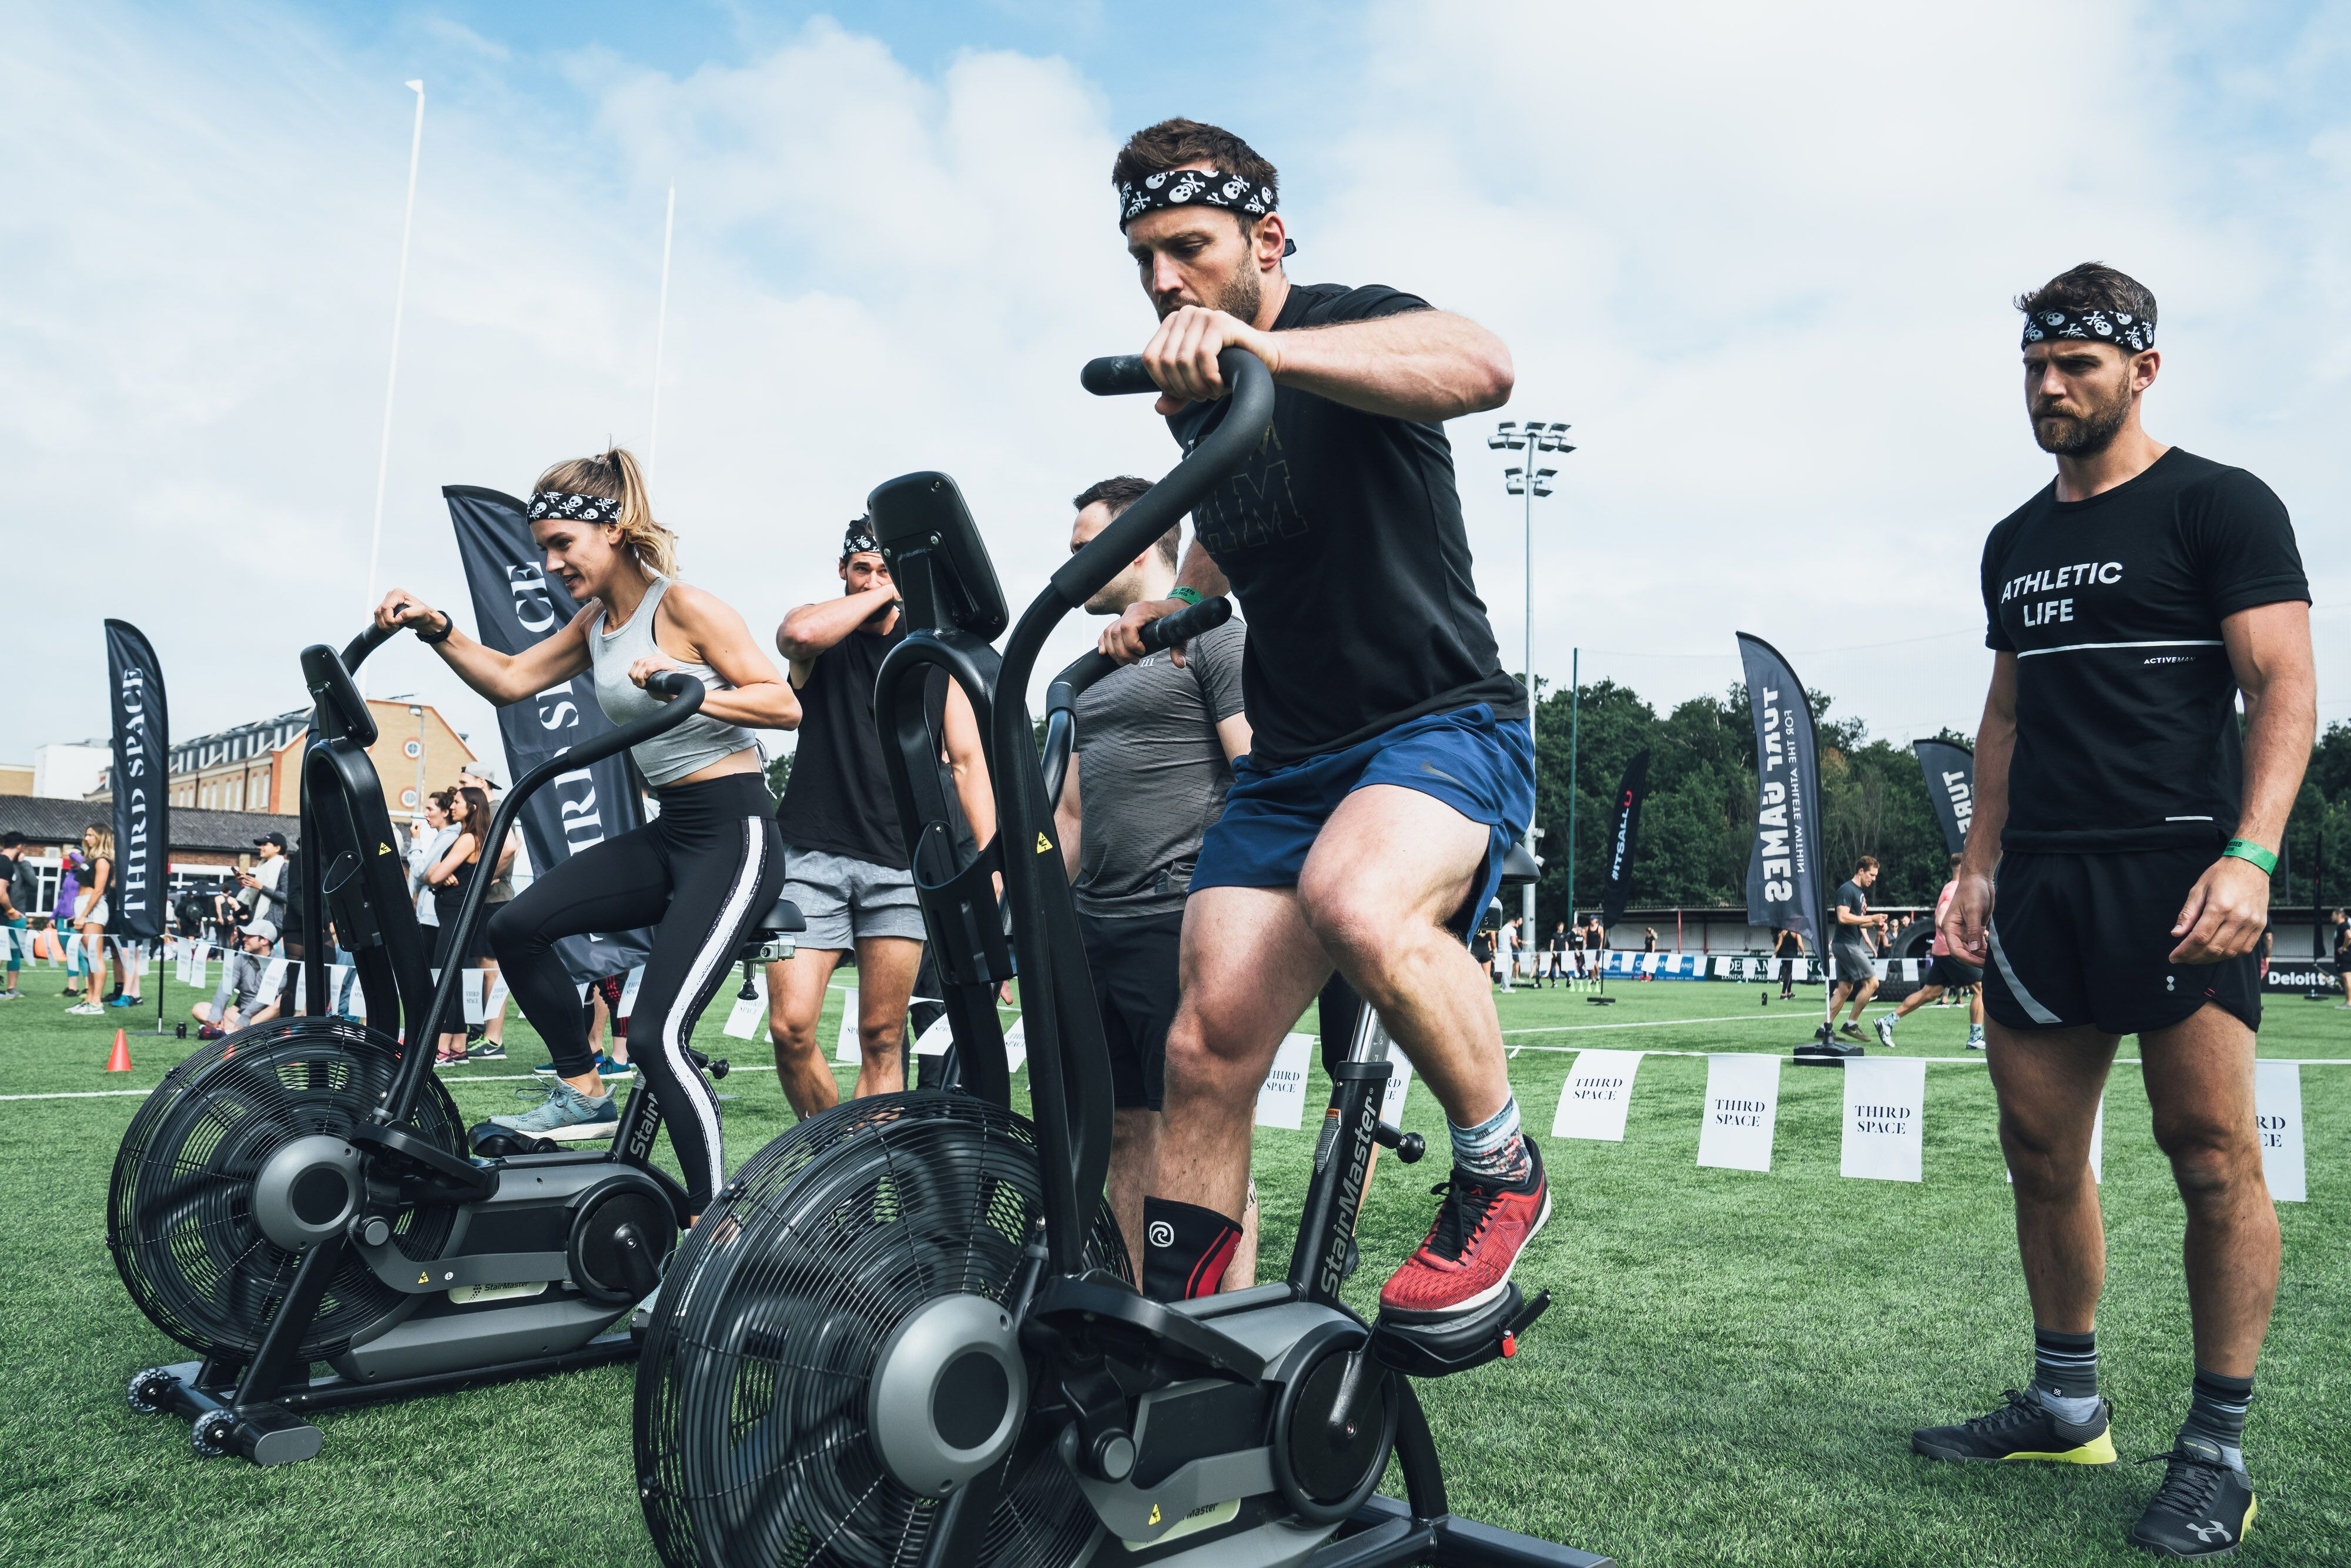 Men's Health Readers Get 50% off Spectator Tickets to the Under Armour Turf Games